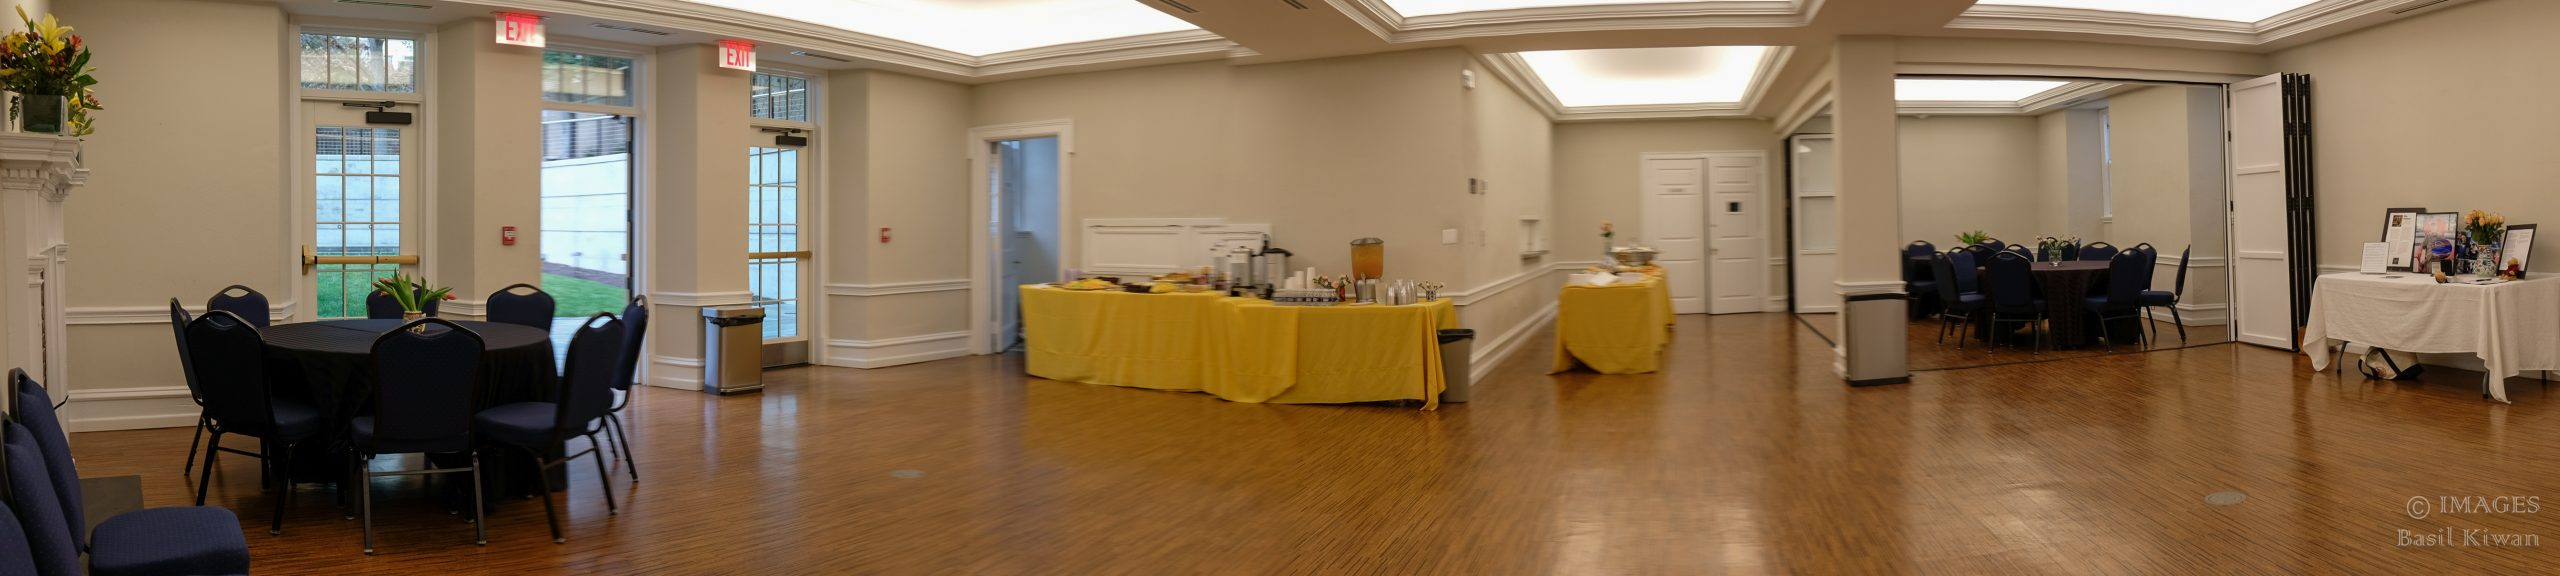 Panoramic shot of the Assembly Room